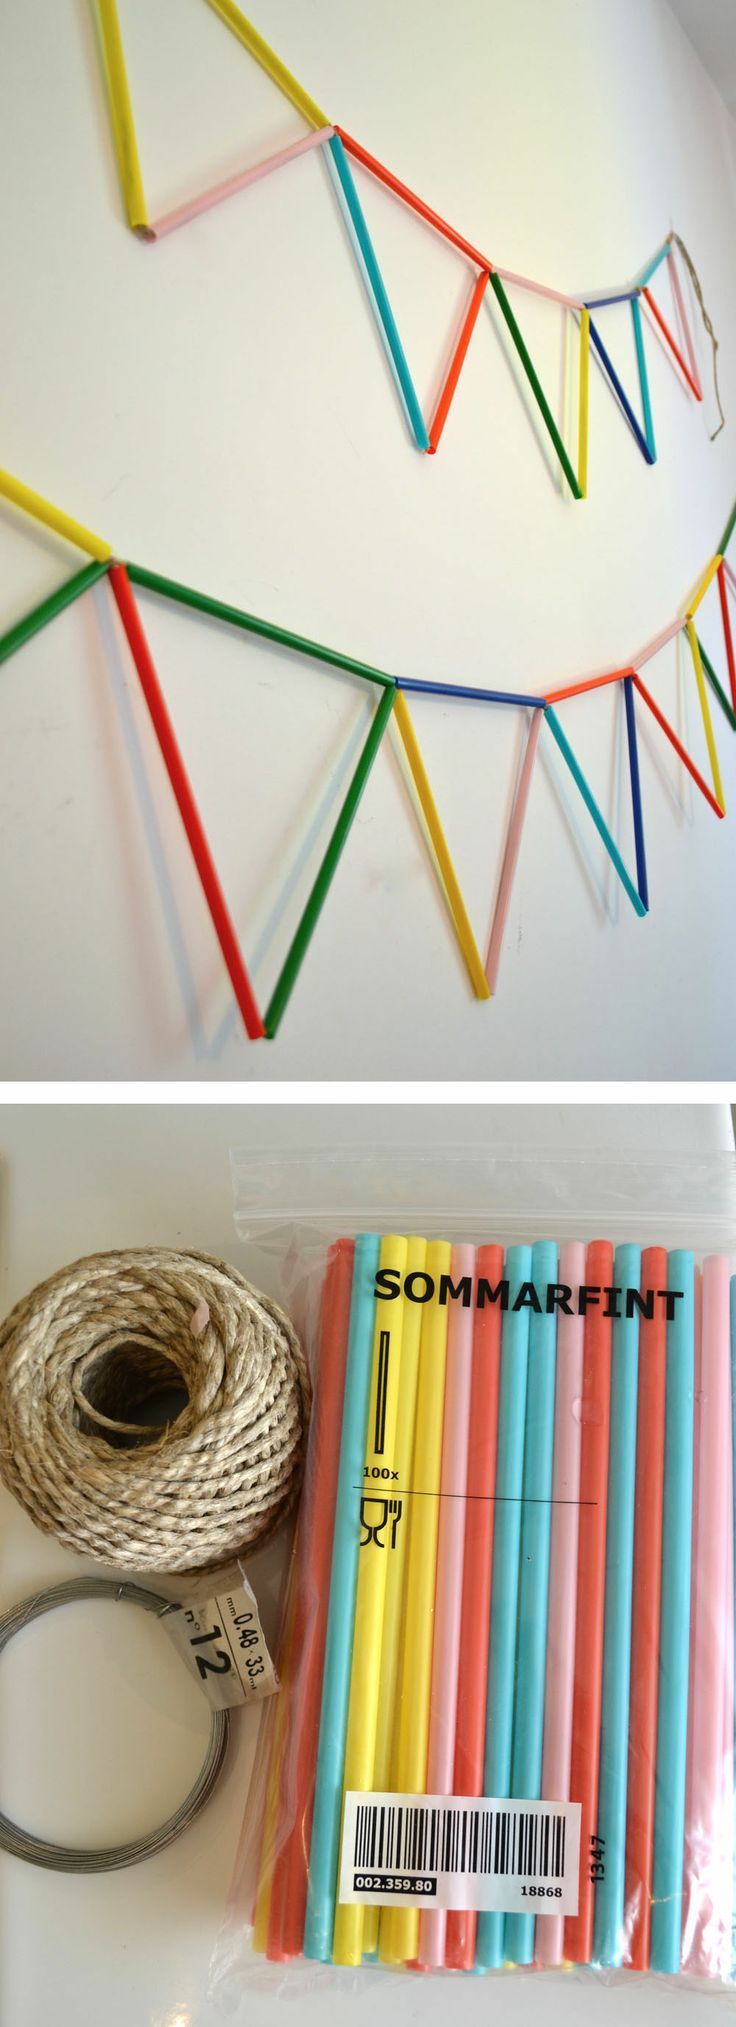 Ikea hack pendants made from straws http://sulia.com/my_thoughts/51c94e89-bf8d-441e-b057-55dfac2d8dd3/?source=pin&action=share&ux=mono&btn=big&form_factor=desktop&sharer_id=36499071&is_sharer_author=true&pinner=36499071.<3